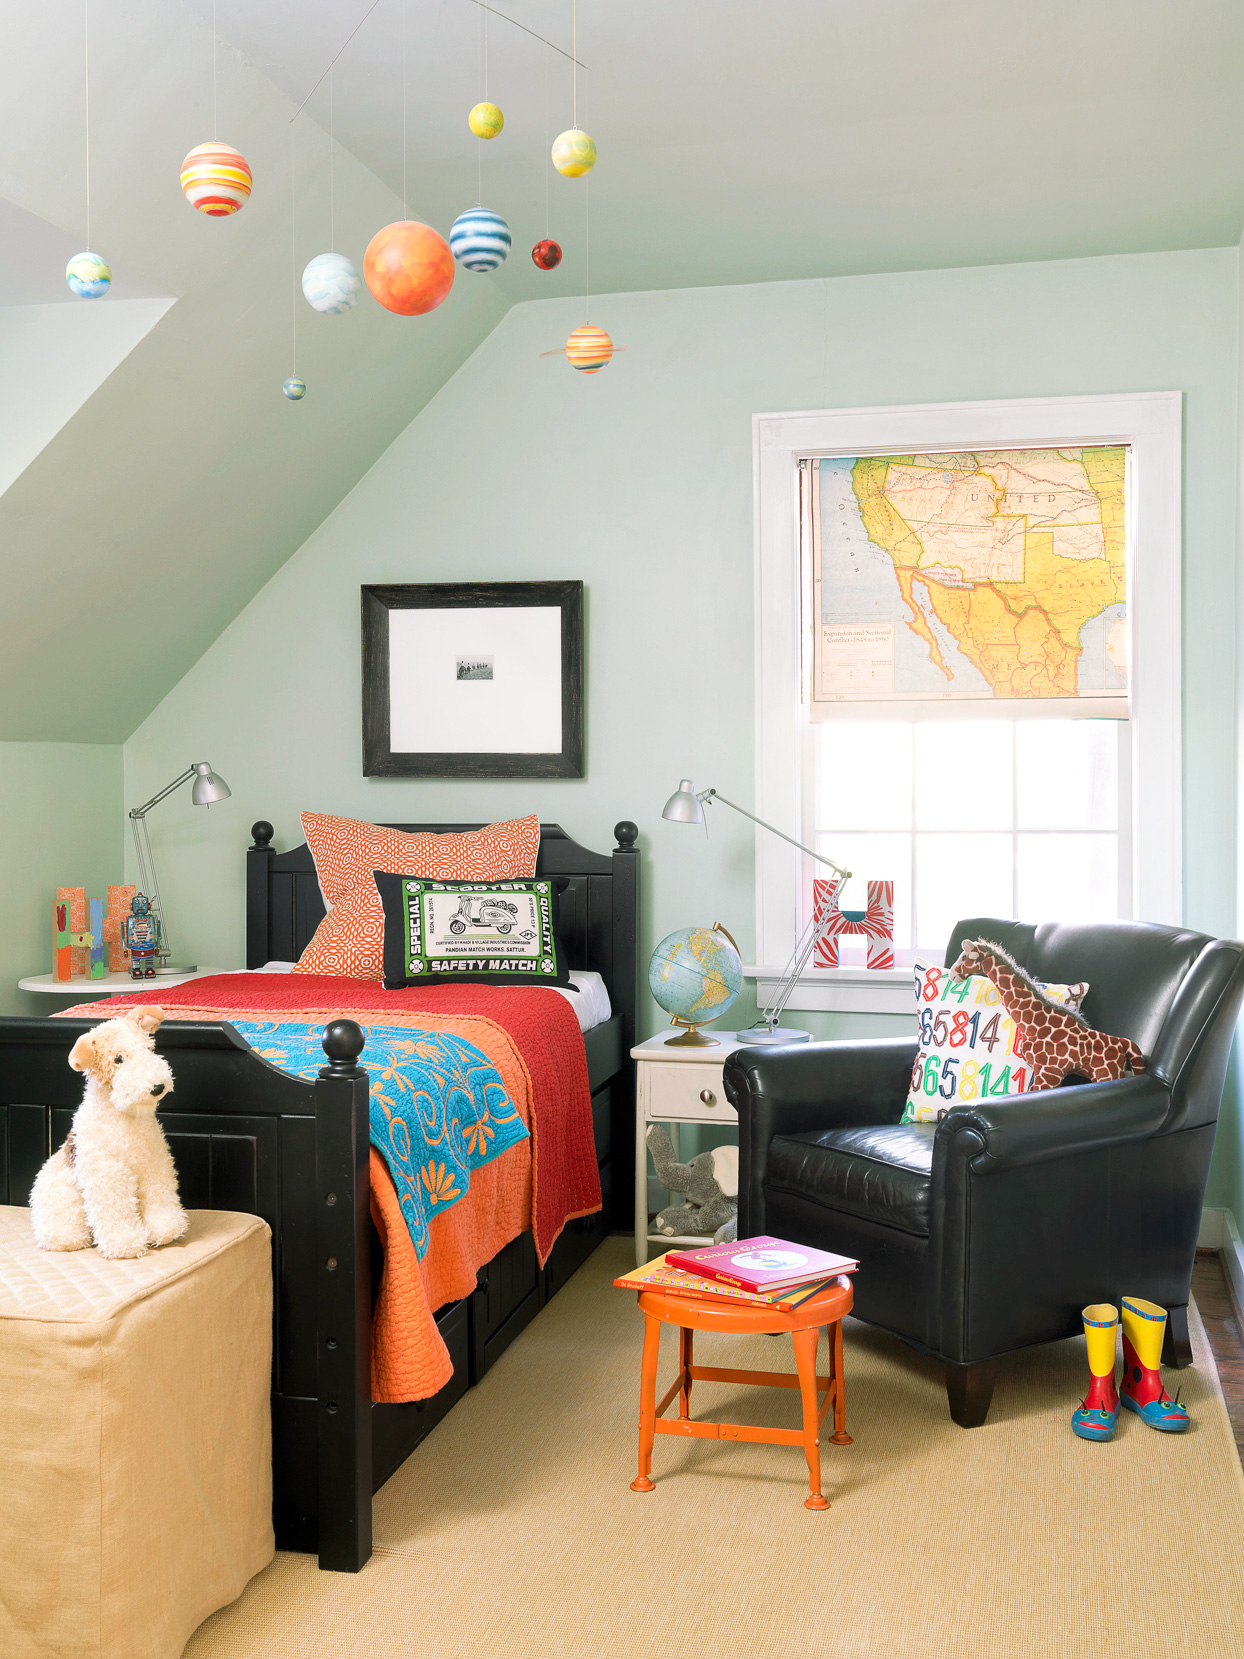 childrens bedroom with planets and stuffed animals